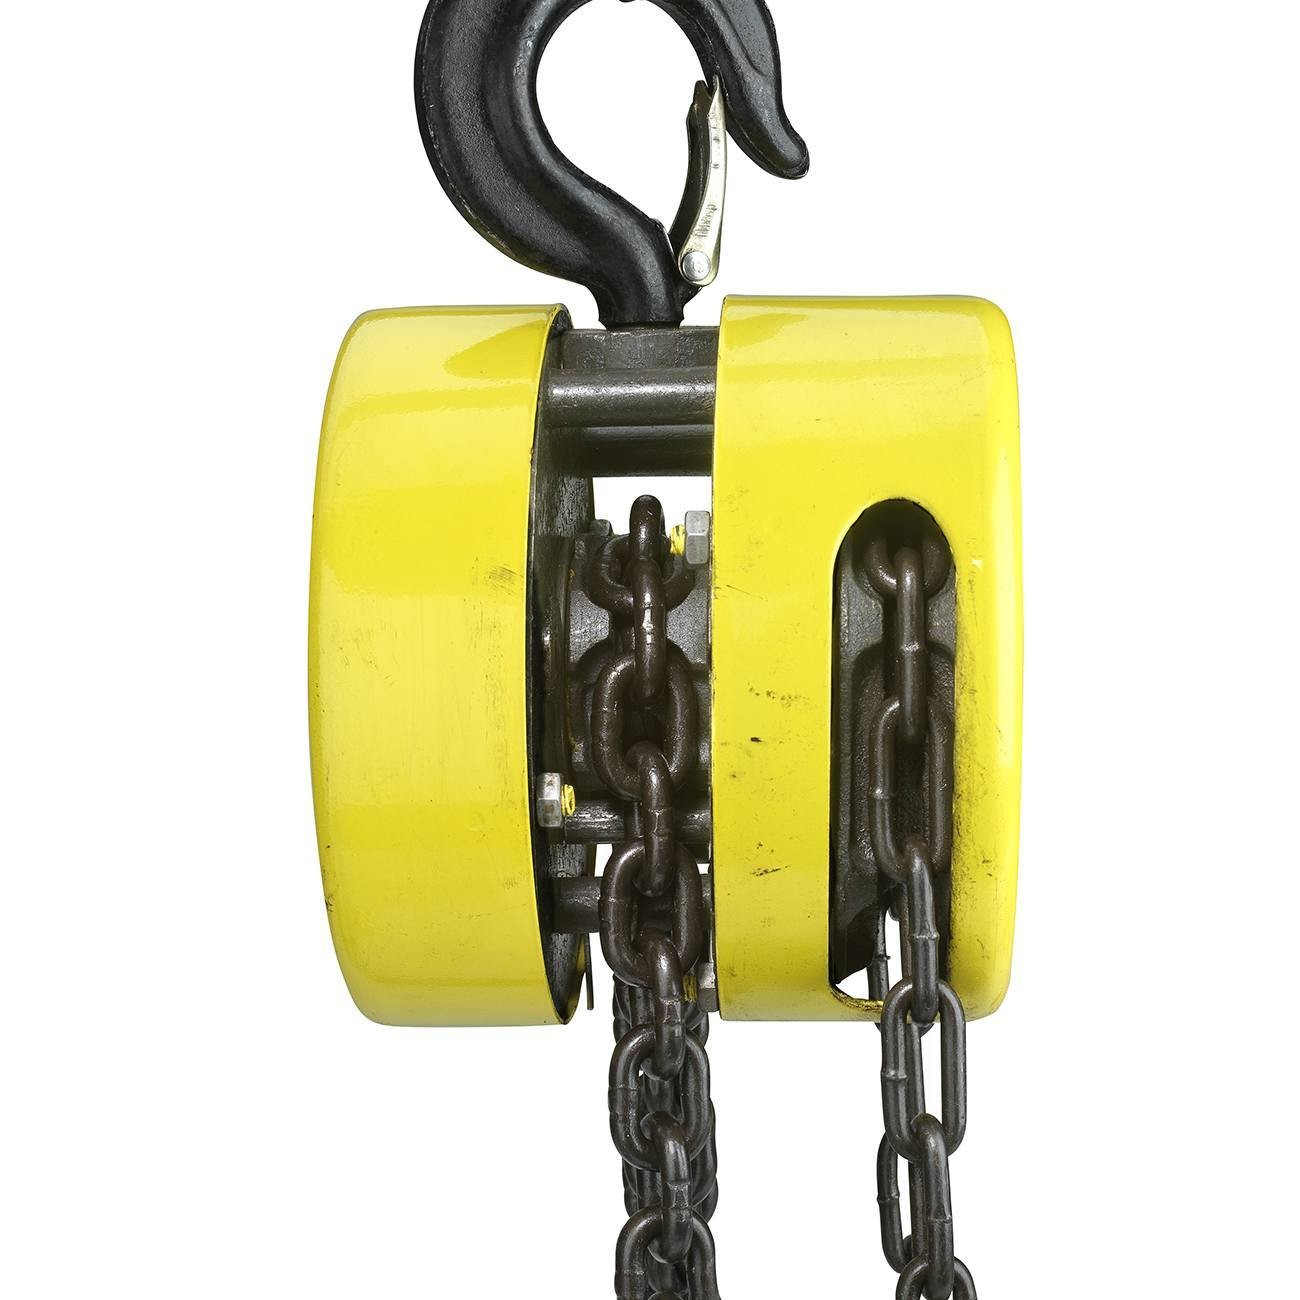 1Ton 15' Chain Hoist